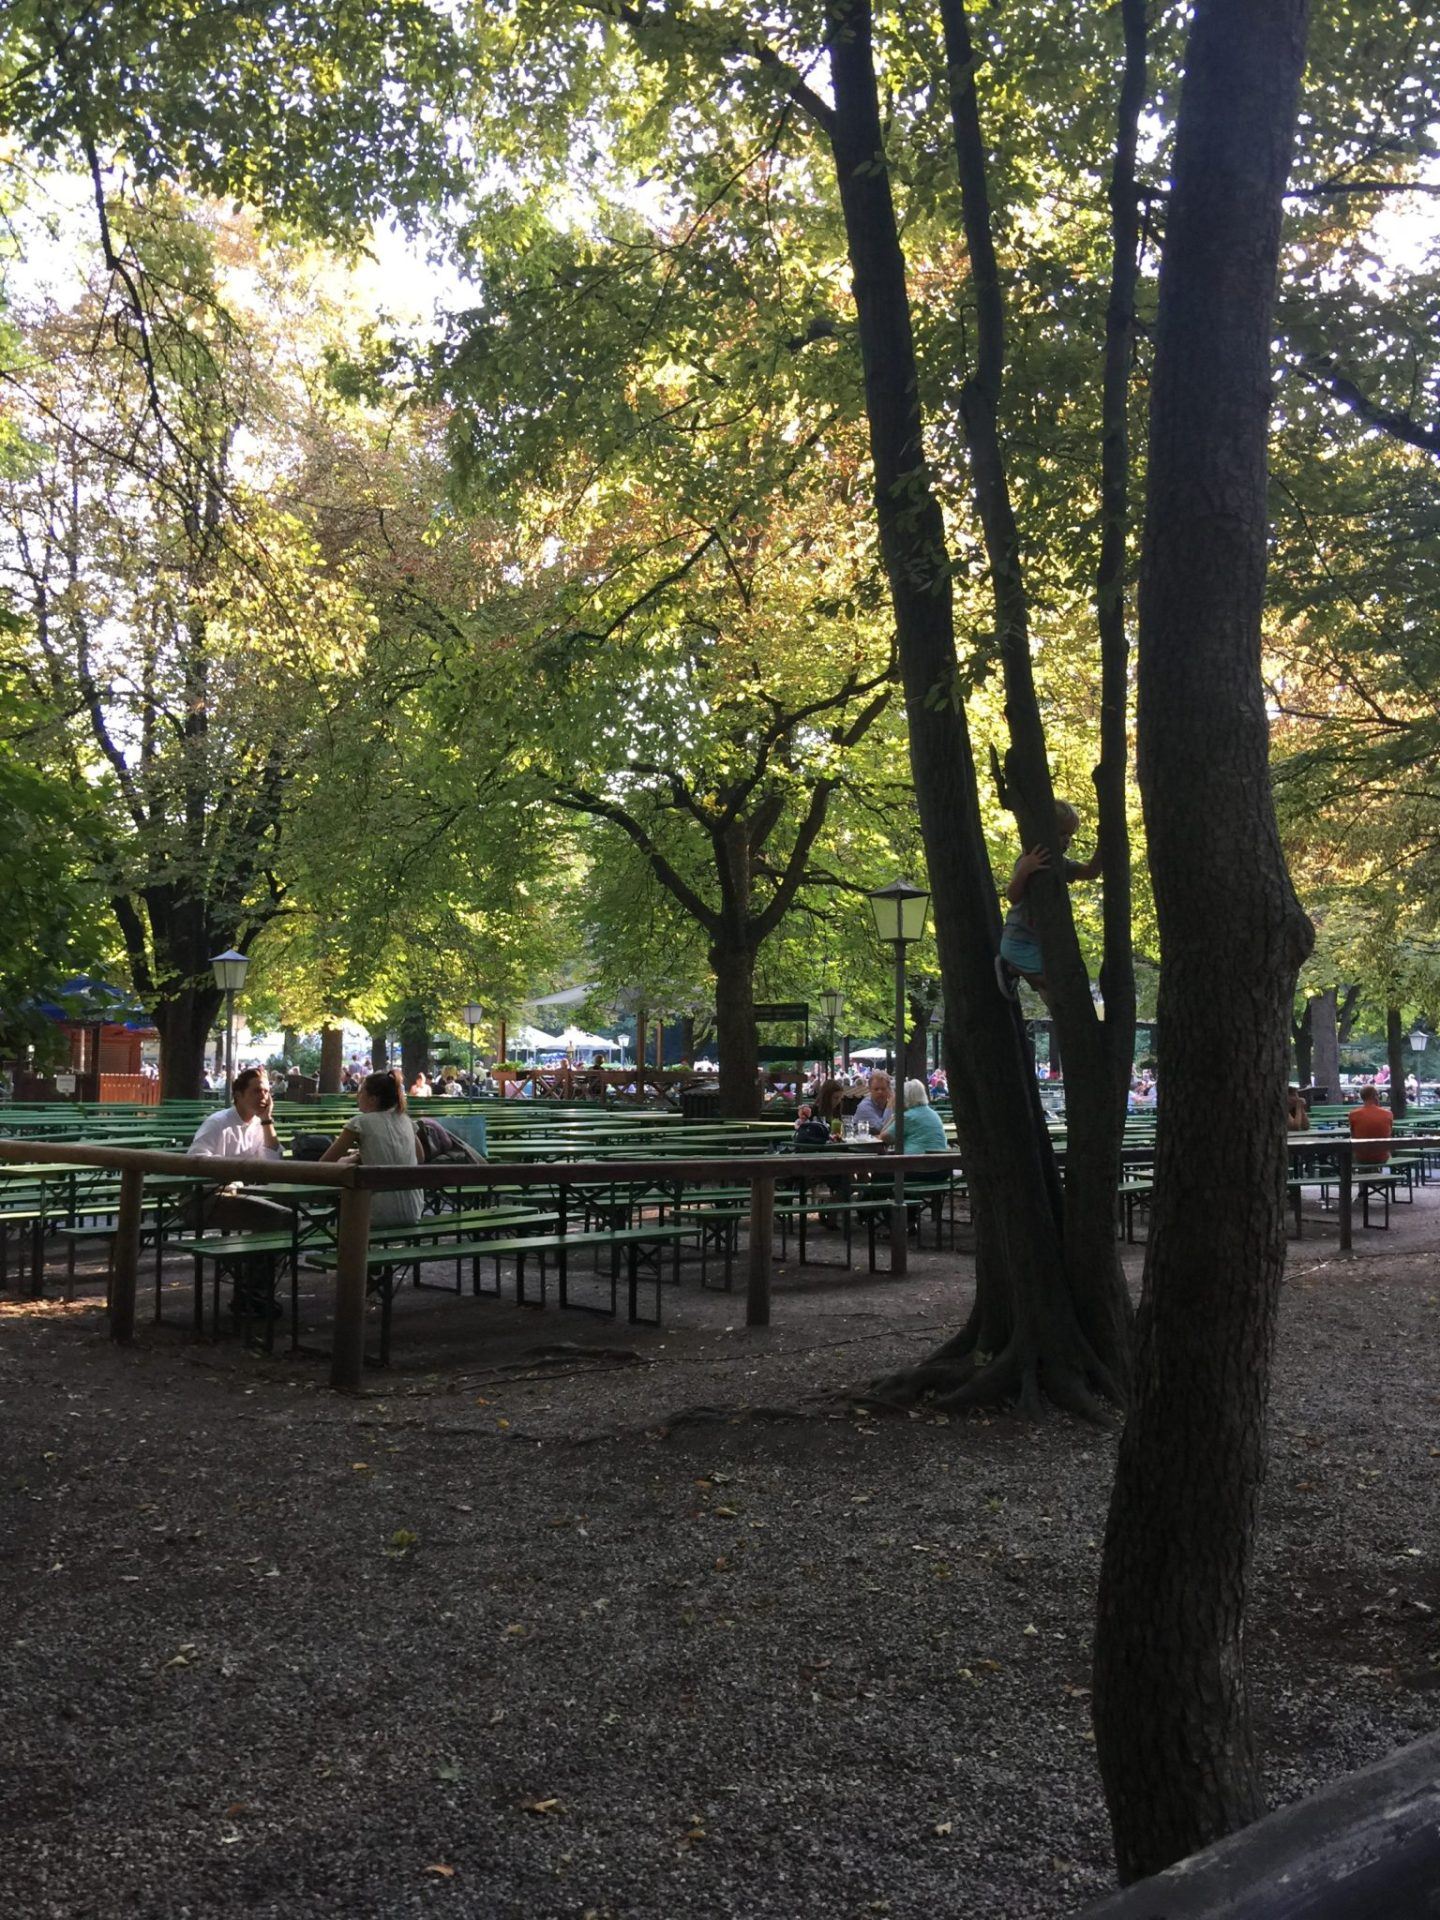 Biergarten by the Chinese Tower, Englisch Garten